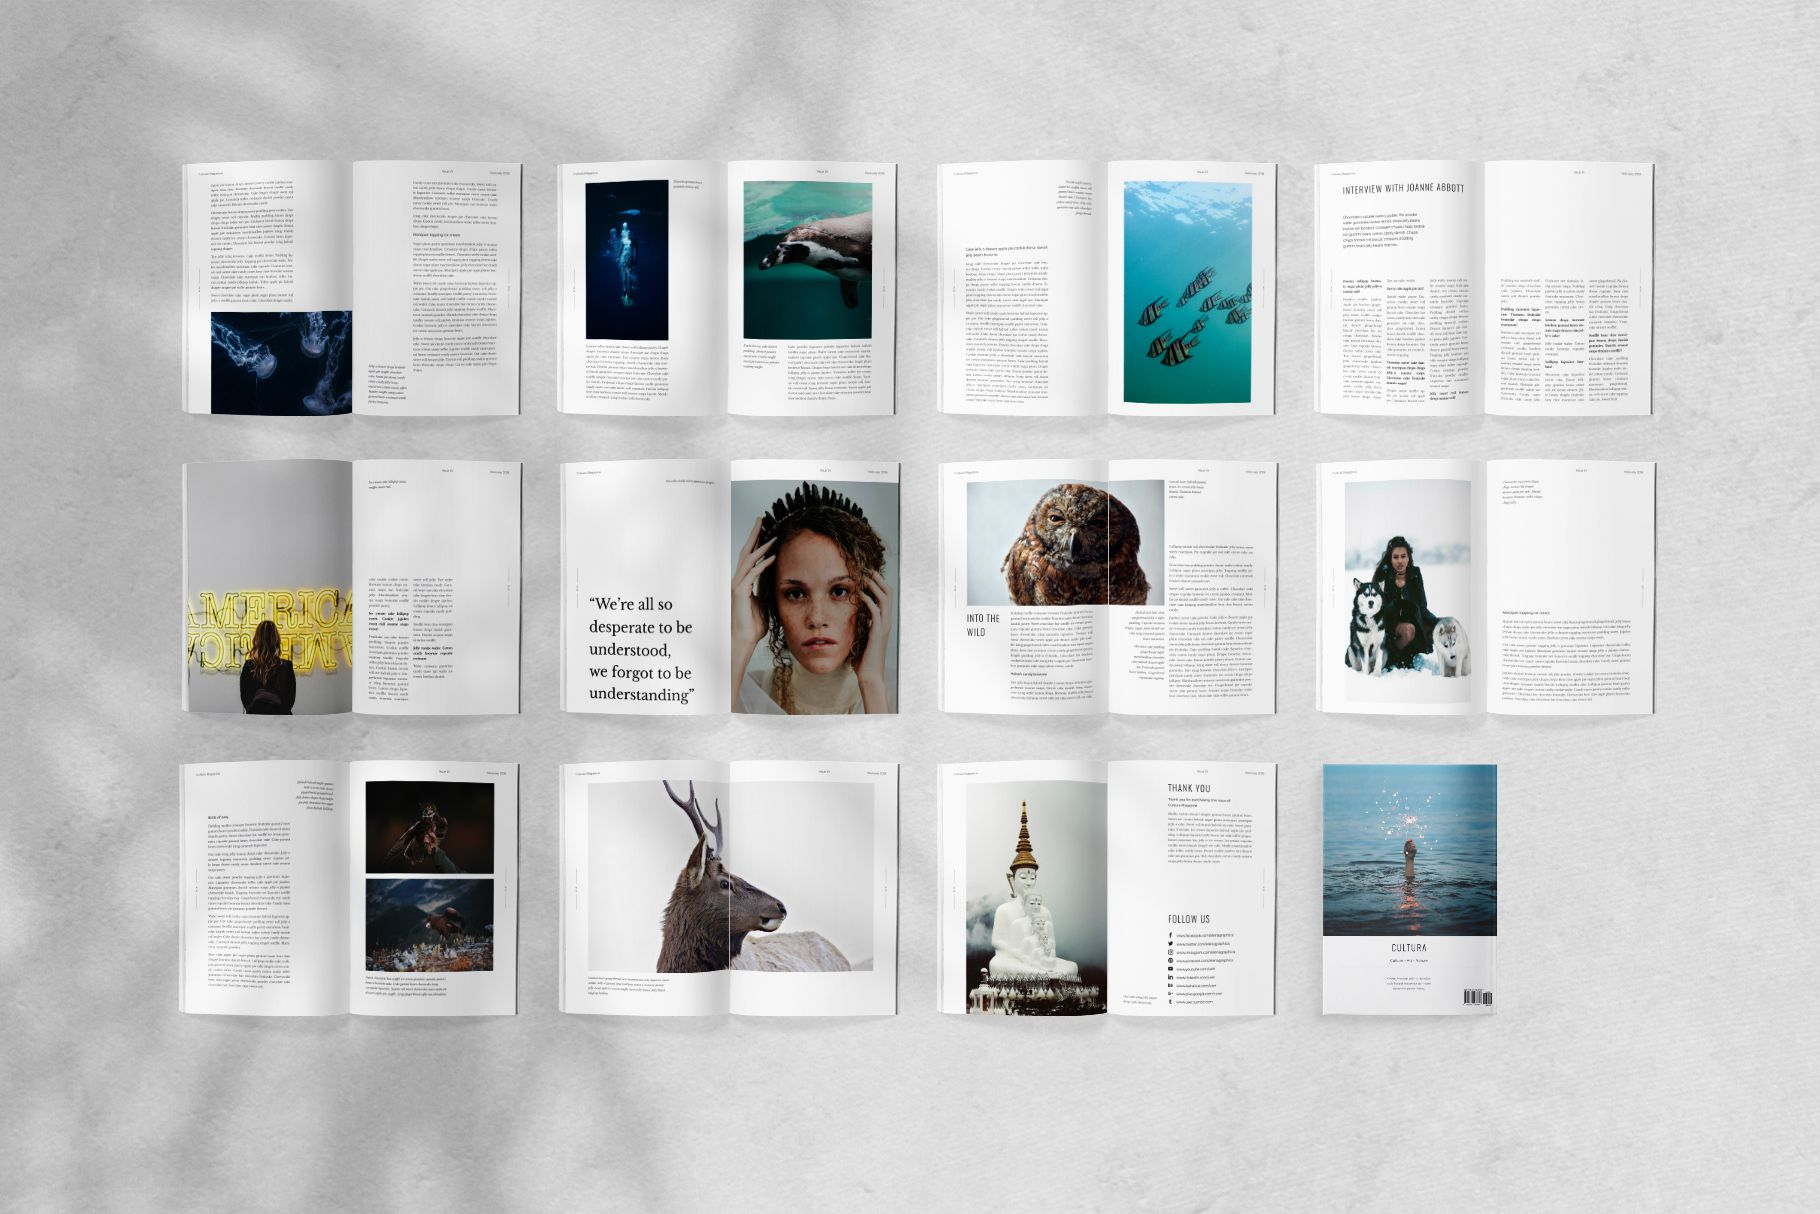 002 Stupendou Free Magazine Layout Template Highest Quality  Templates For Word Microsoft PowerpointFull